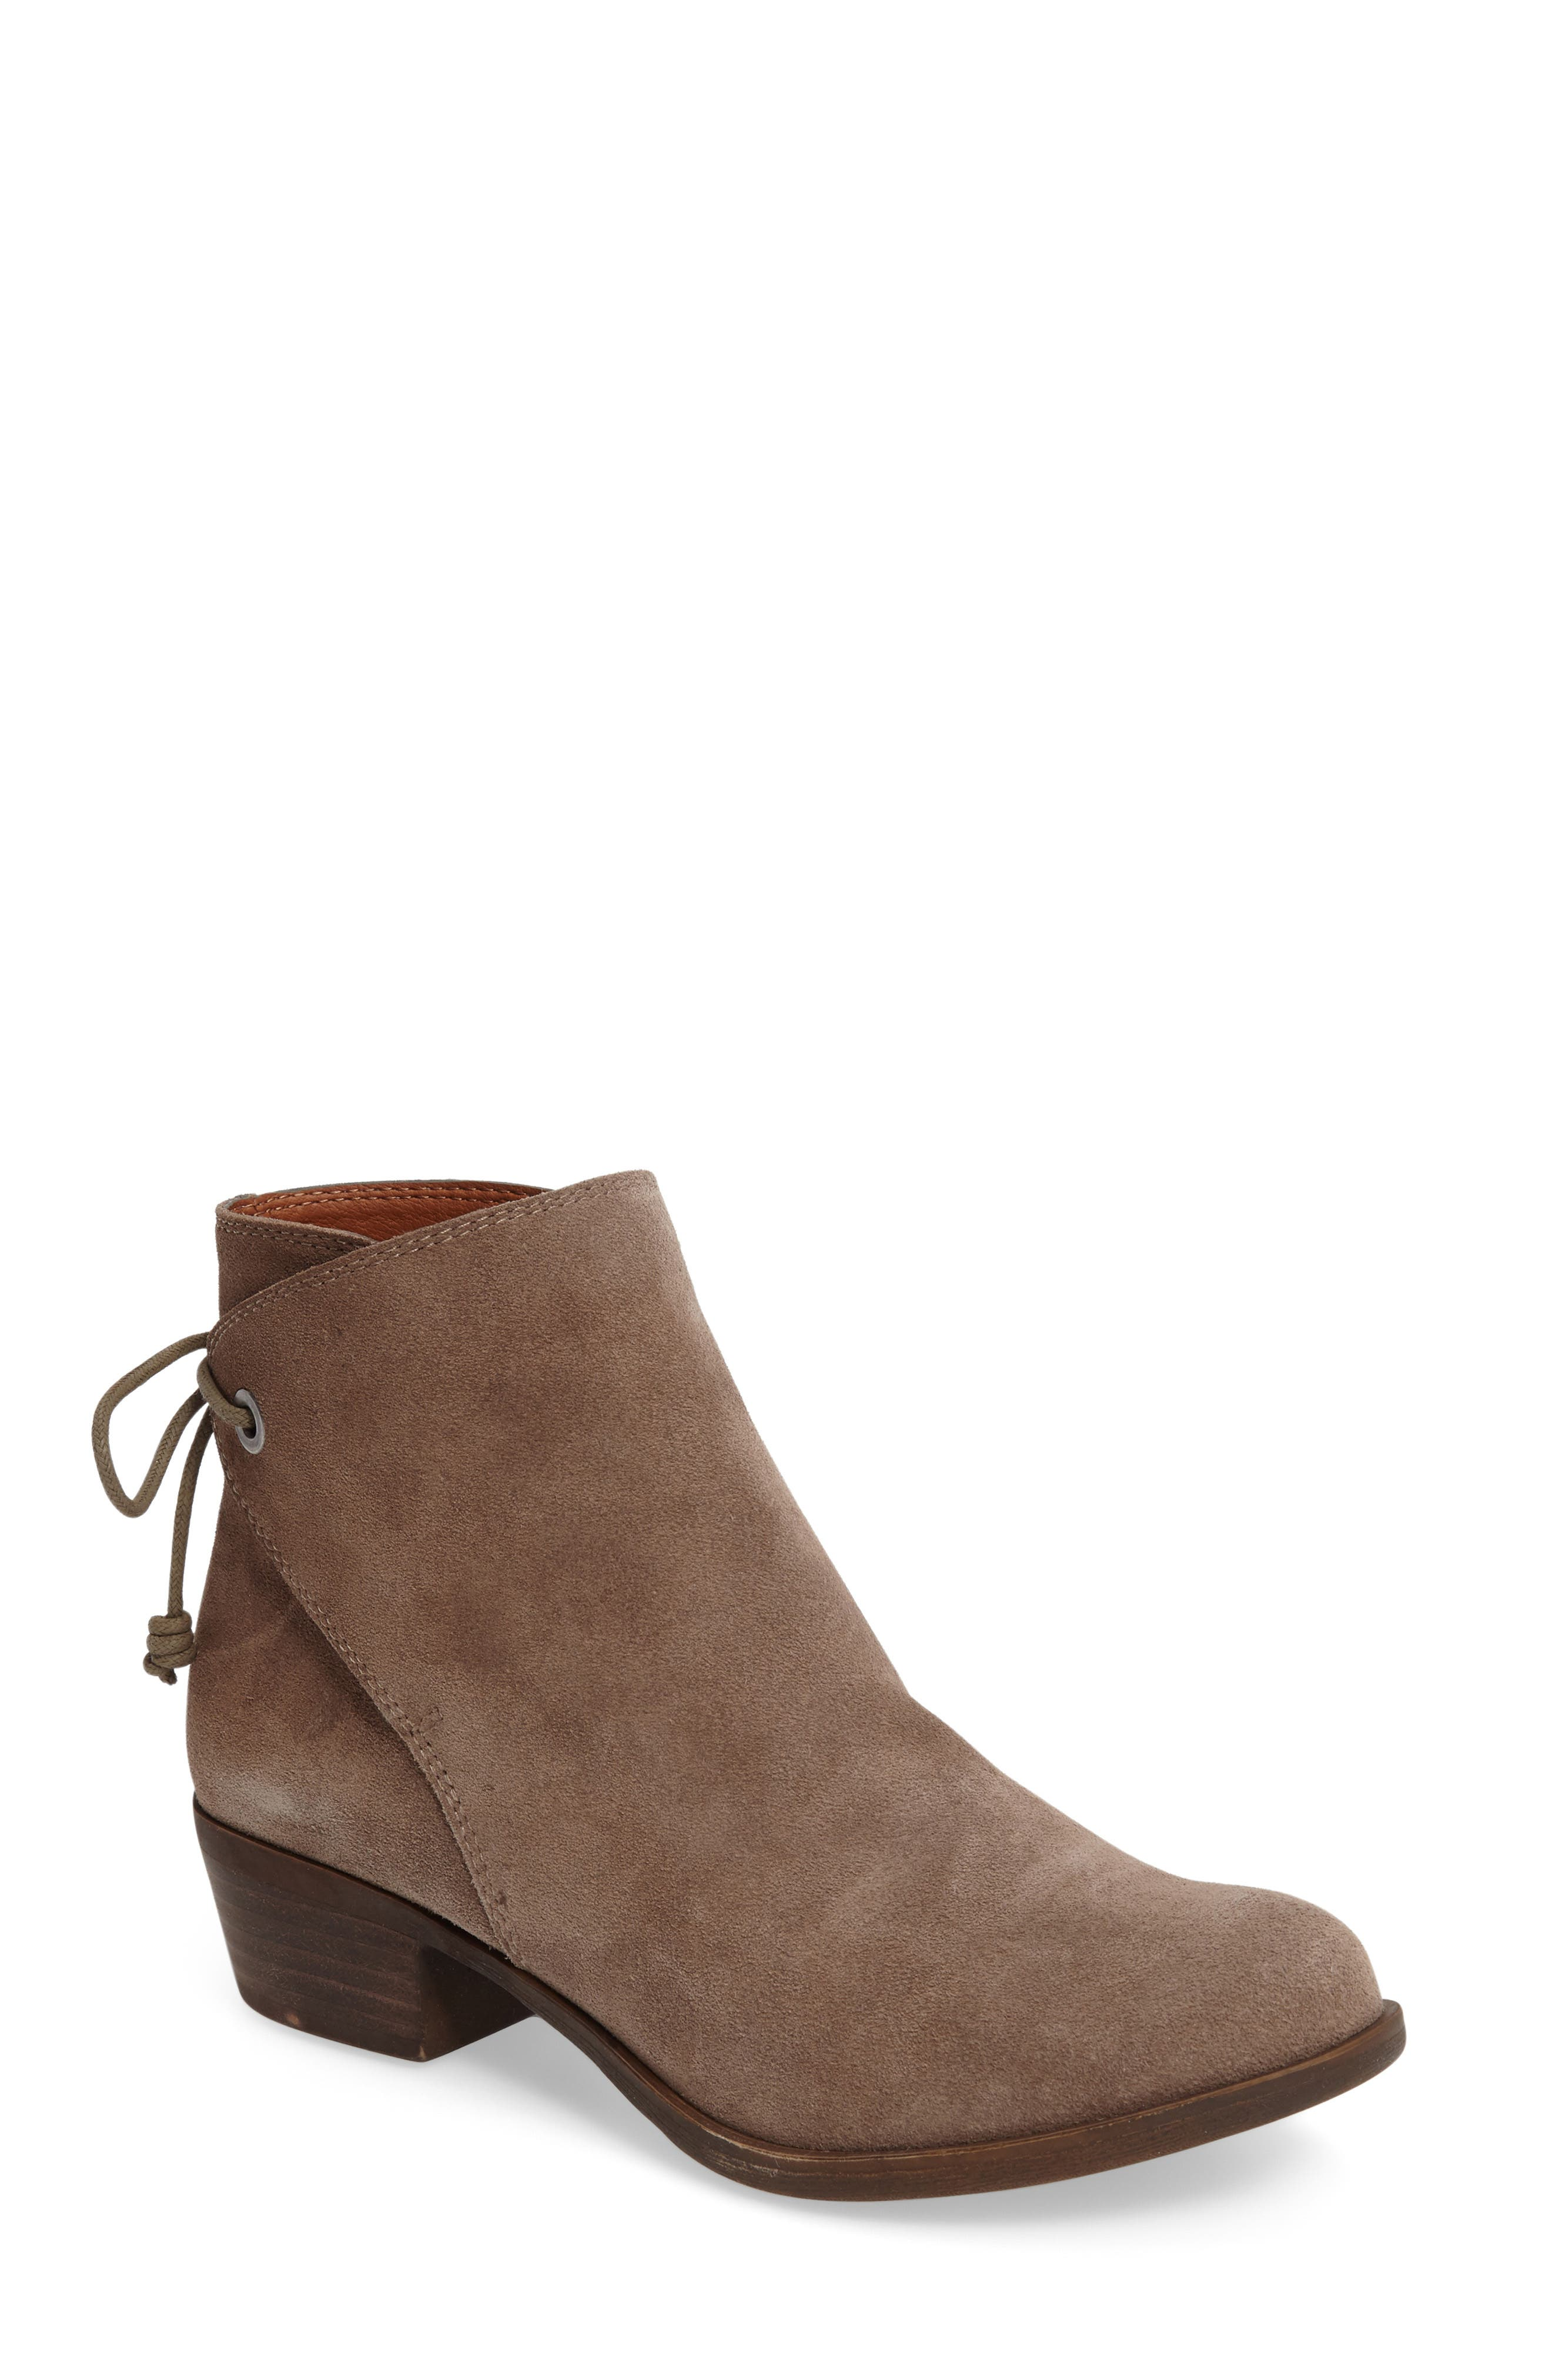 Gwenore Tie Bootie,                             Main thumbnail 2, color,